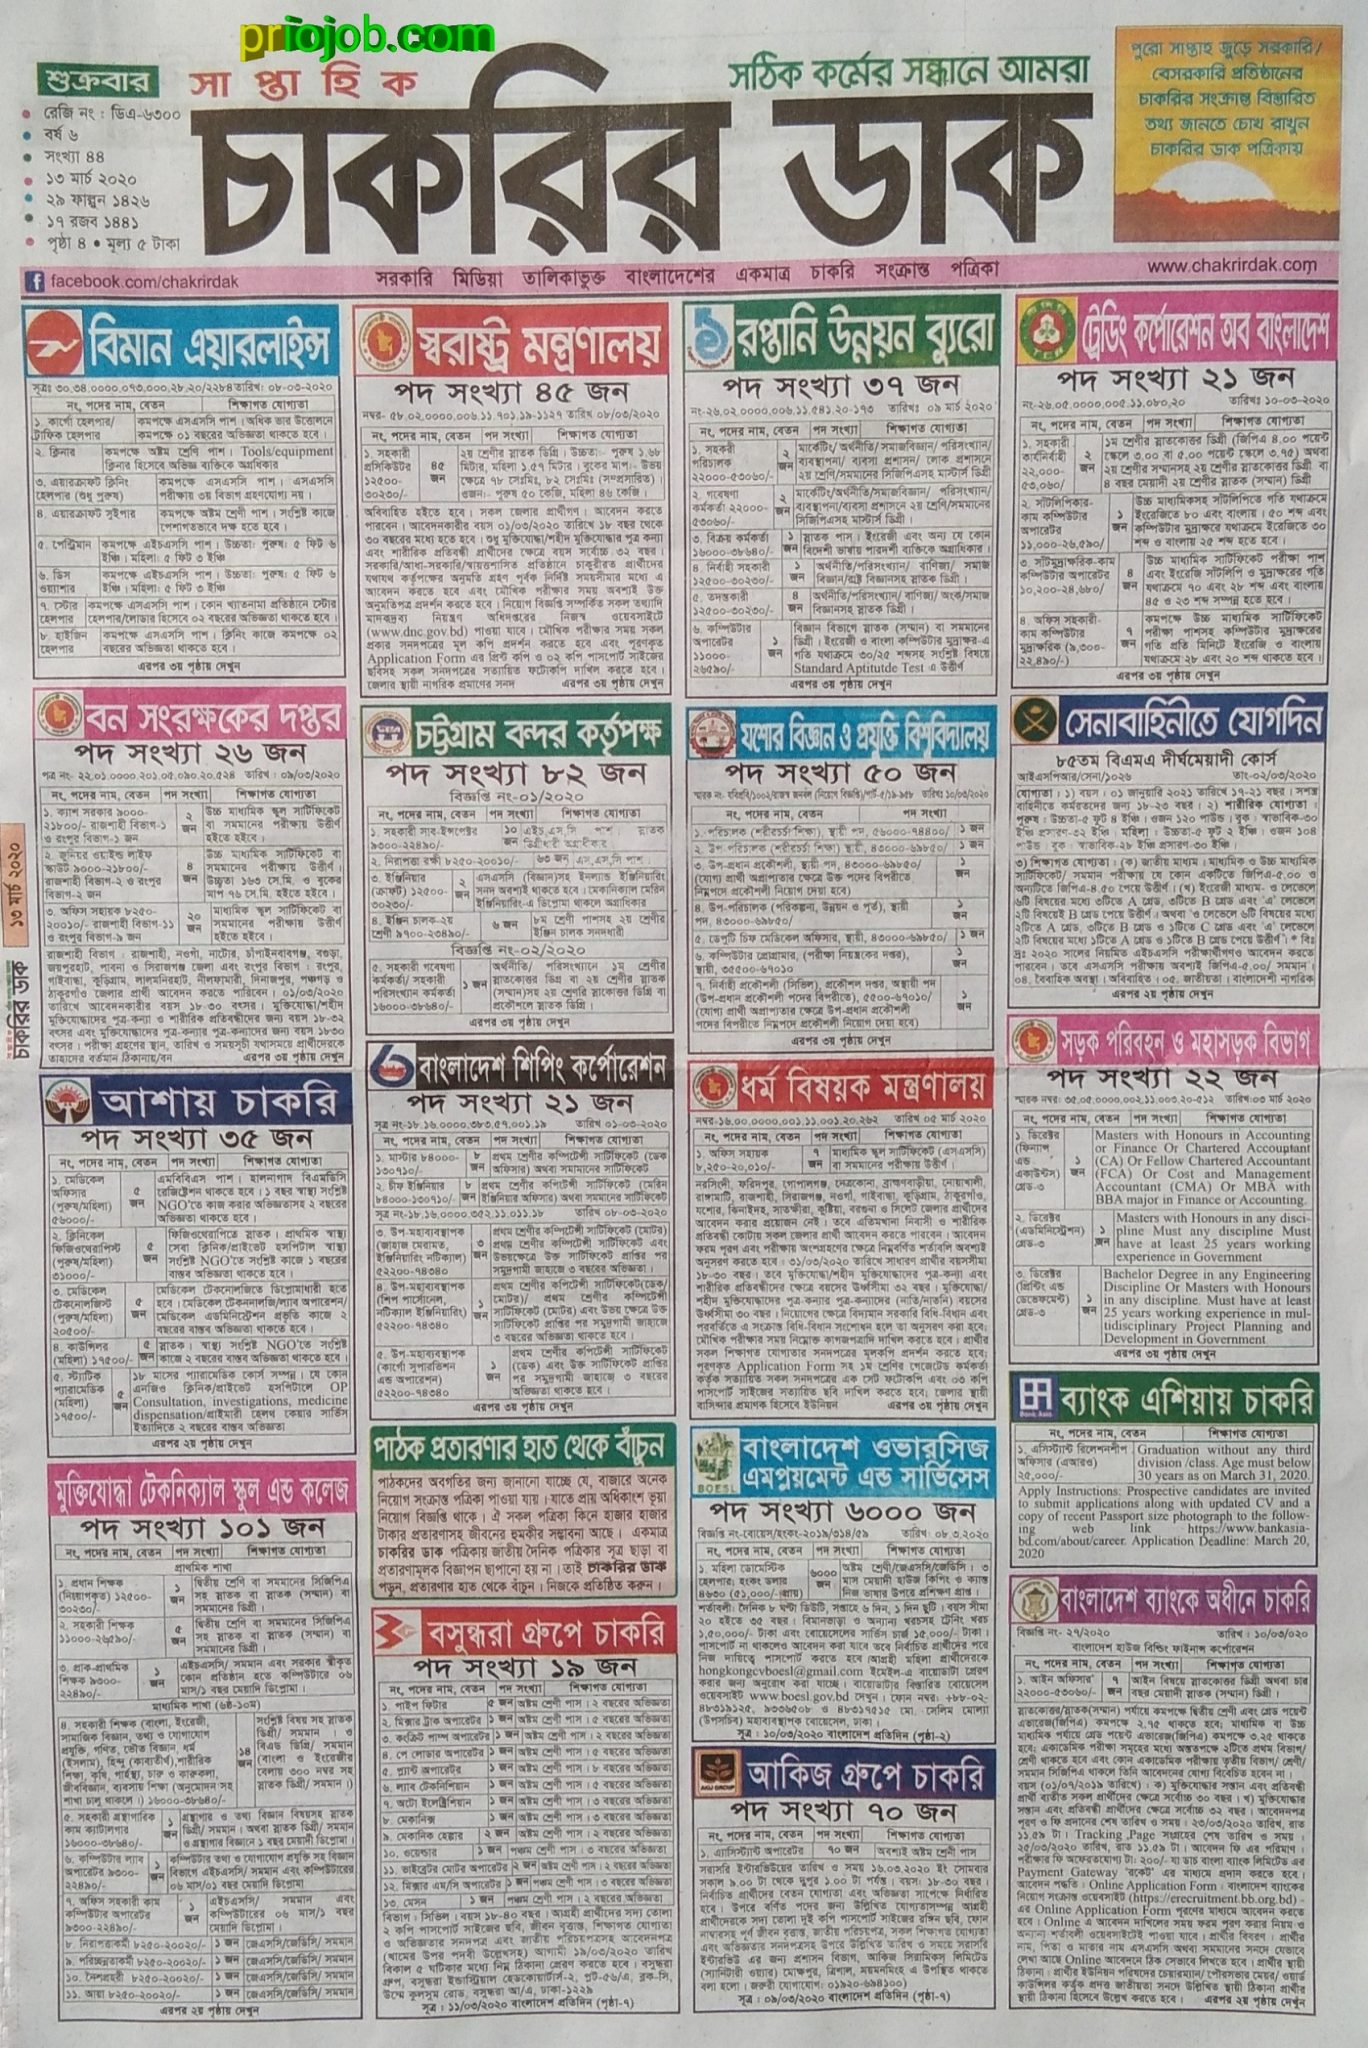 Chakrir Dak Weekly Jobs Newspaper 13 March 2020